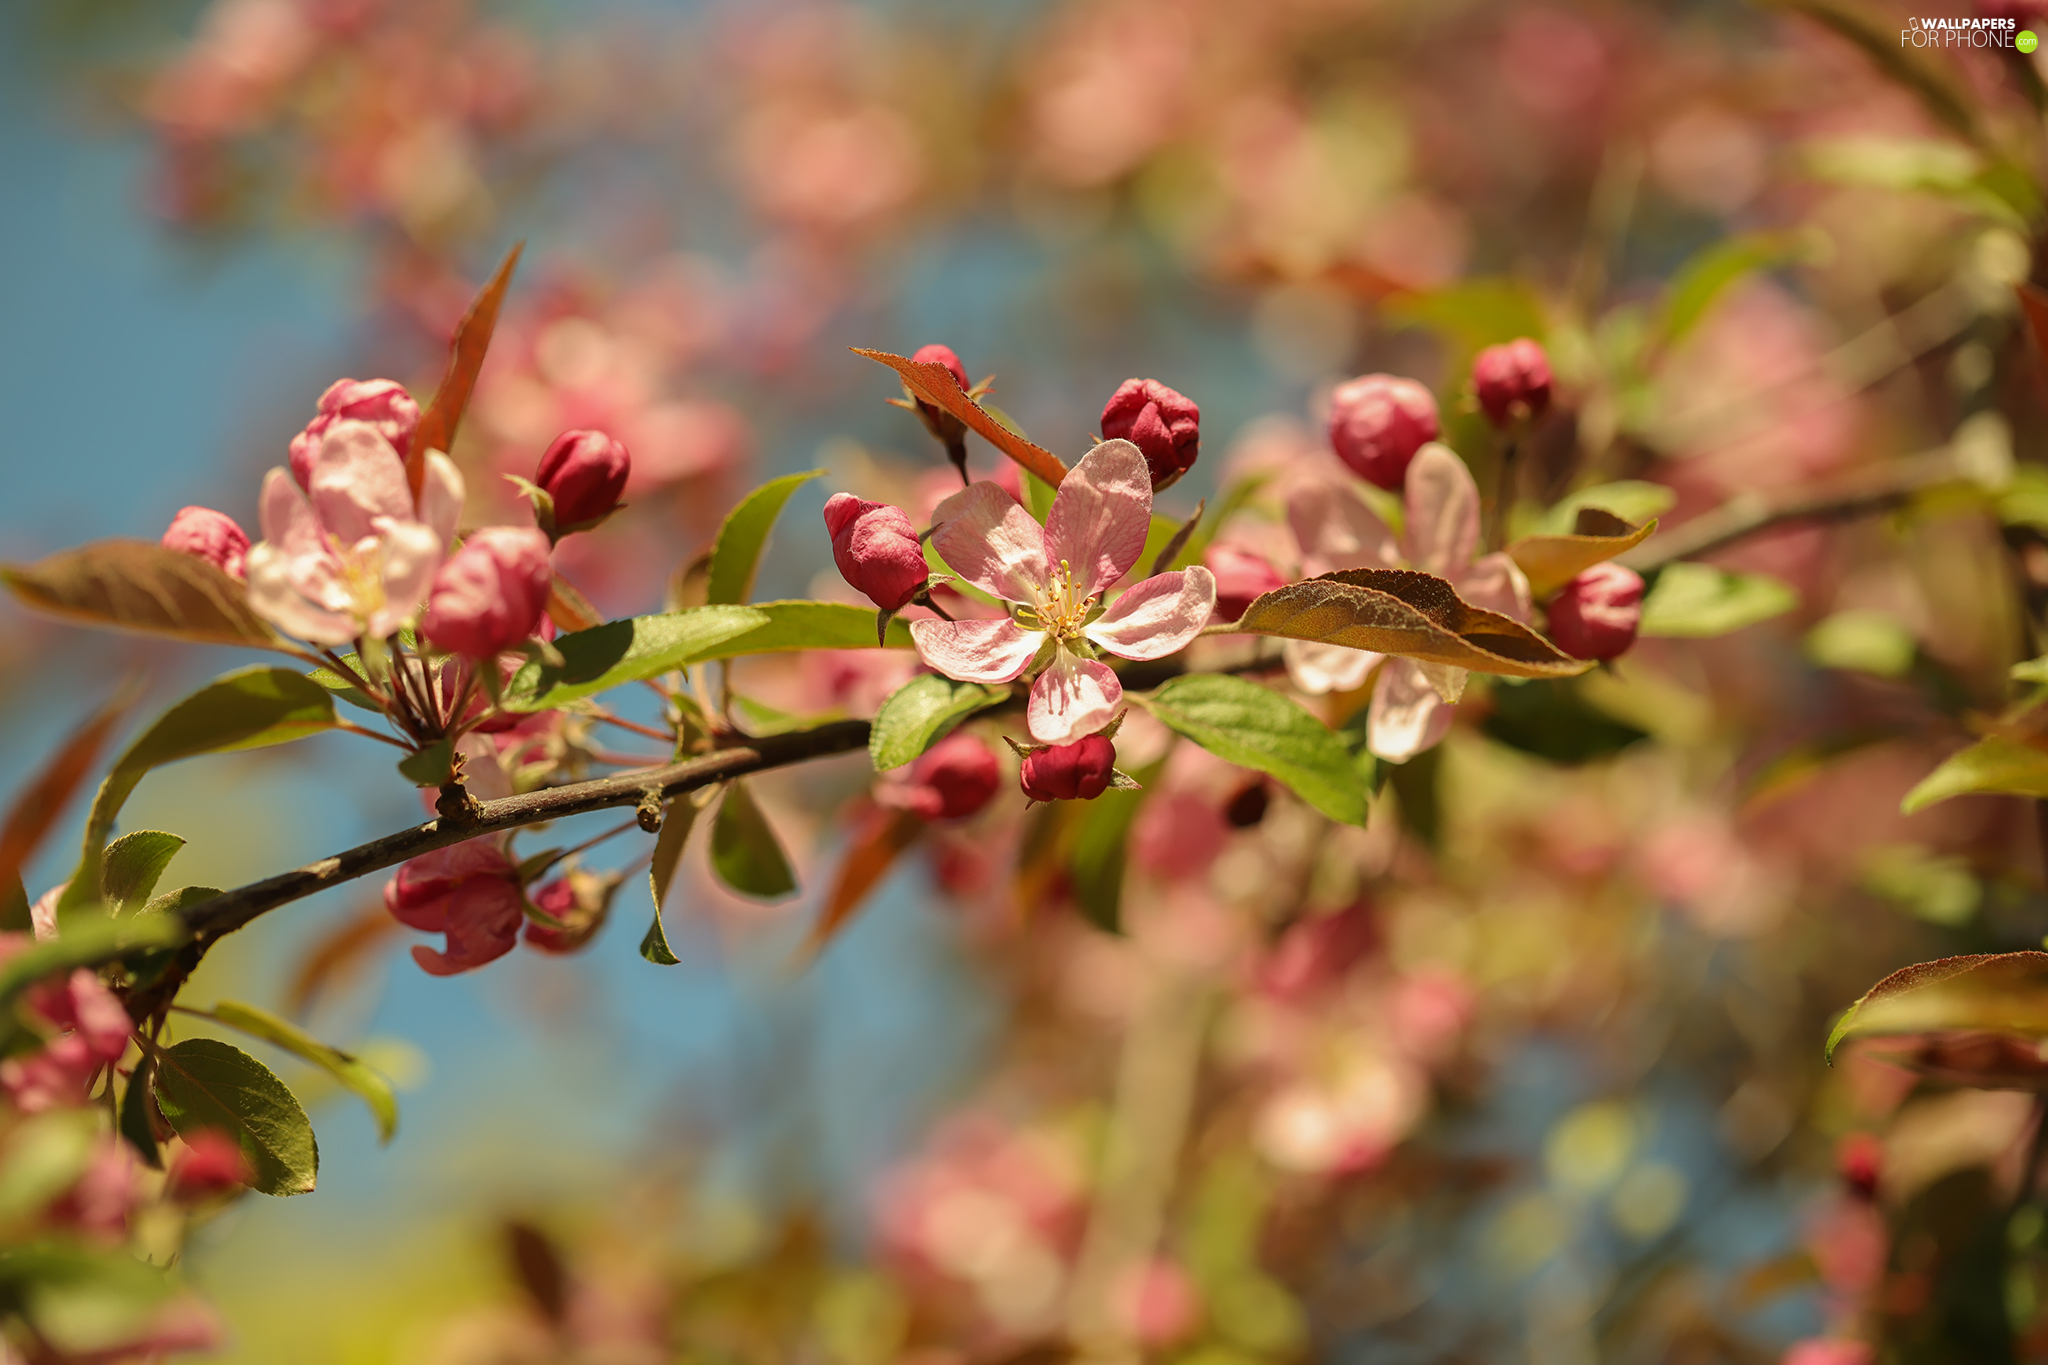 Pink, Blossoming, Flowers, Fruit Tree, Buds, twig